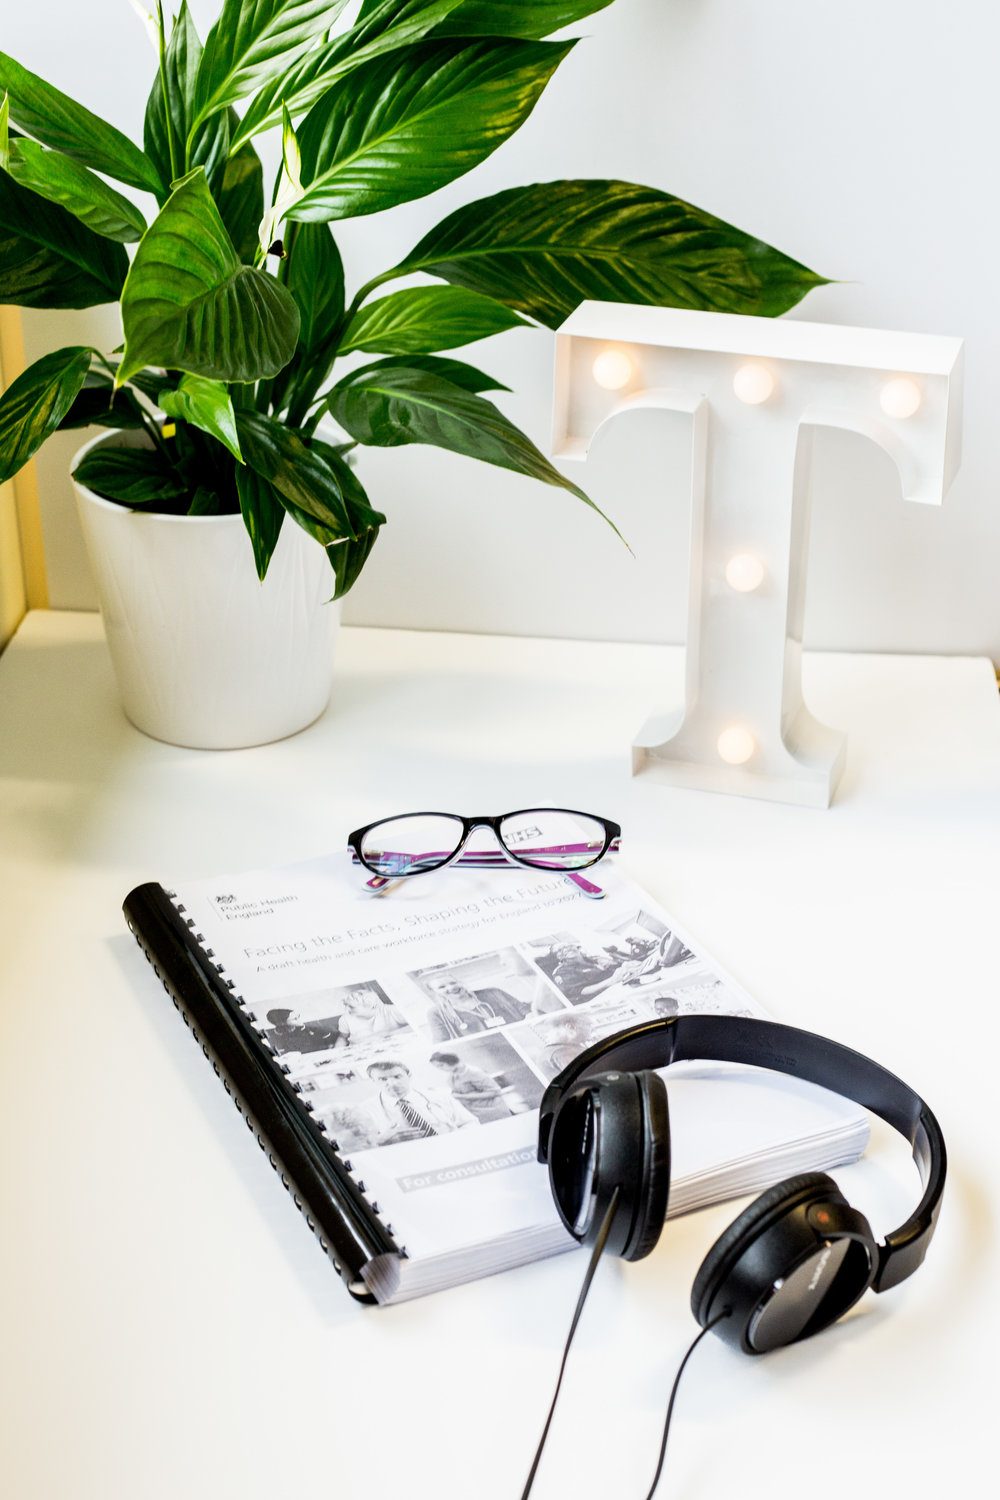 Flat lay and office shots-29.jpg